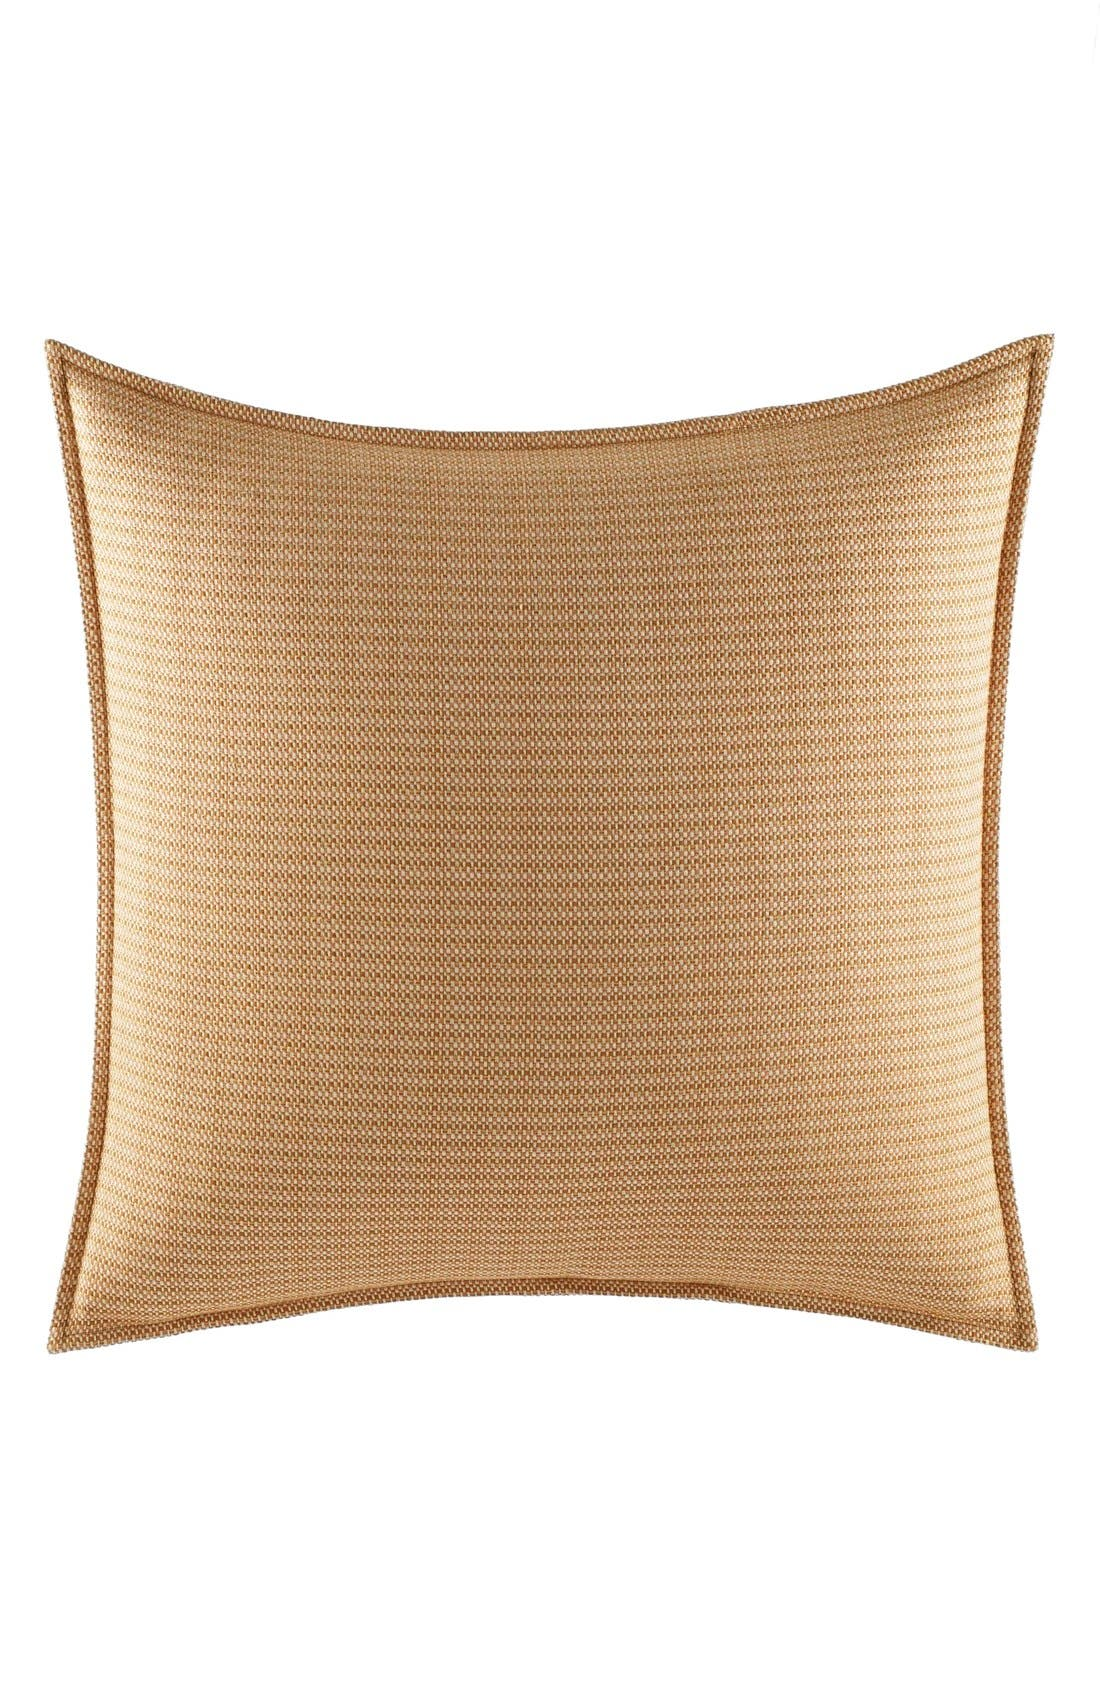 Cayo Coco Euro Sham,                         Main,                         color, Rust